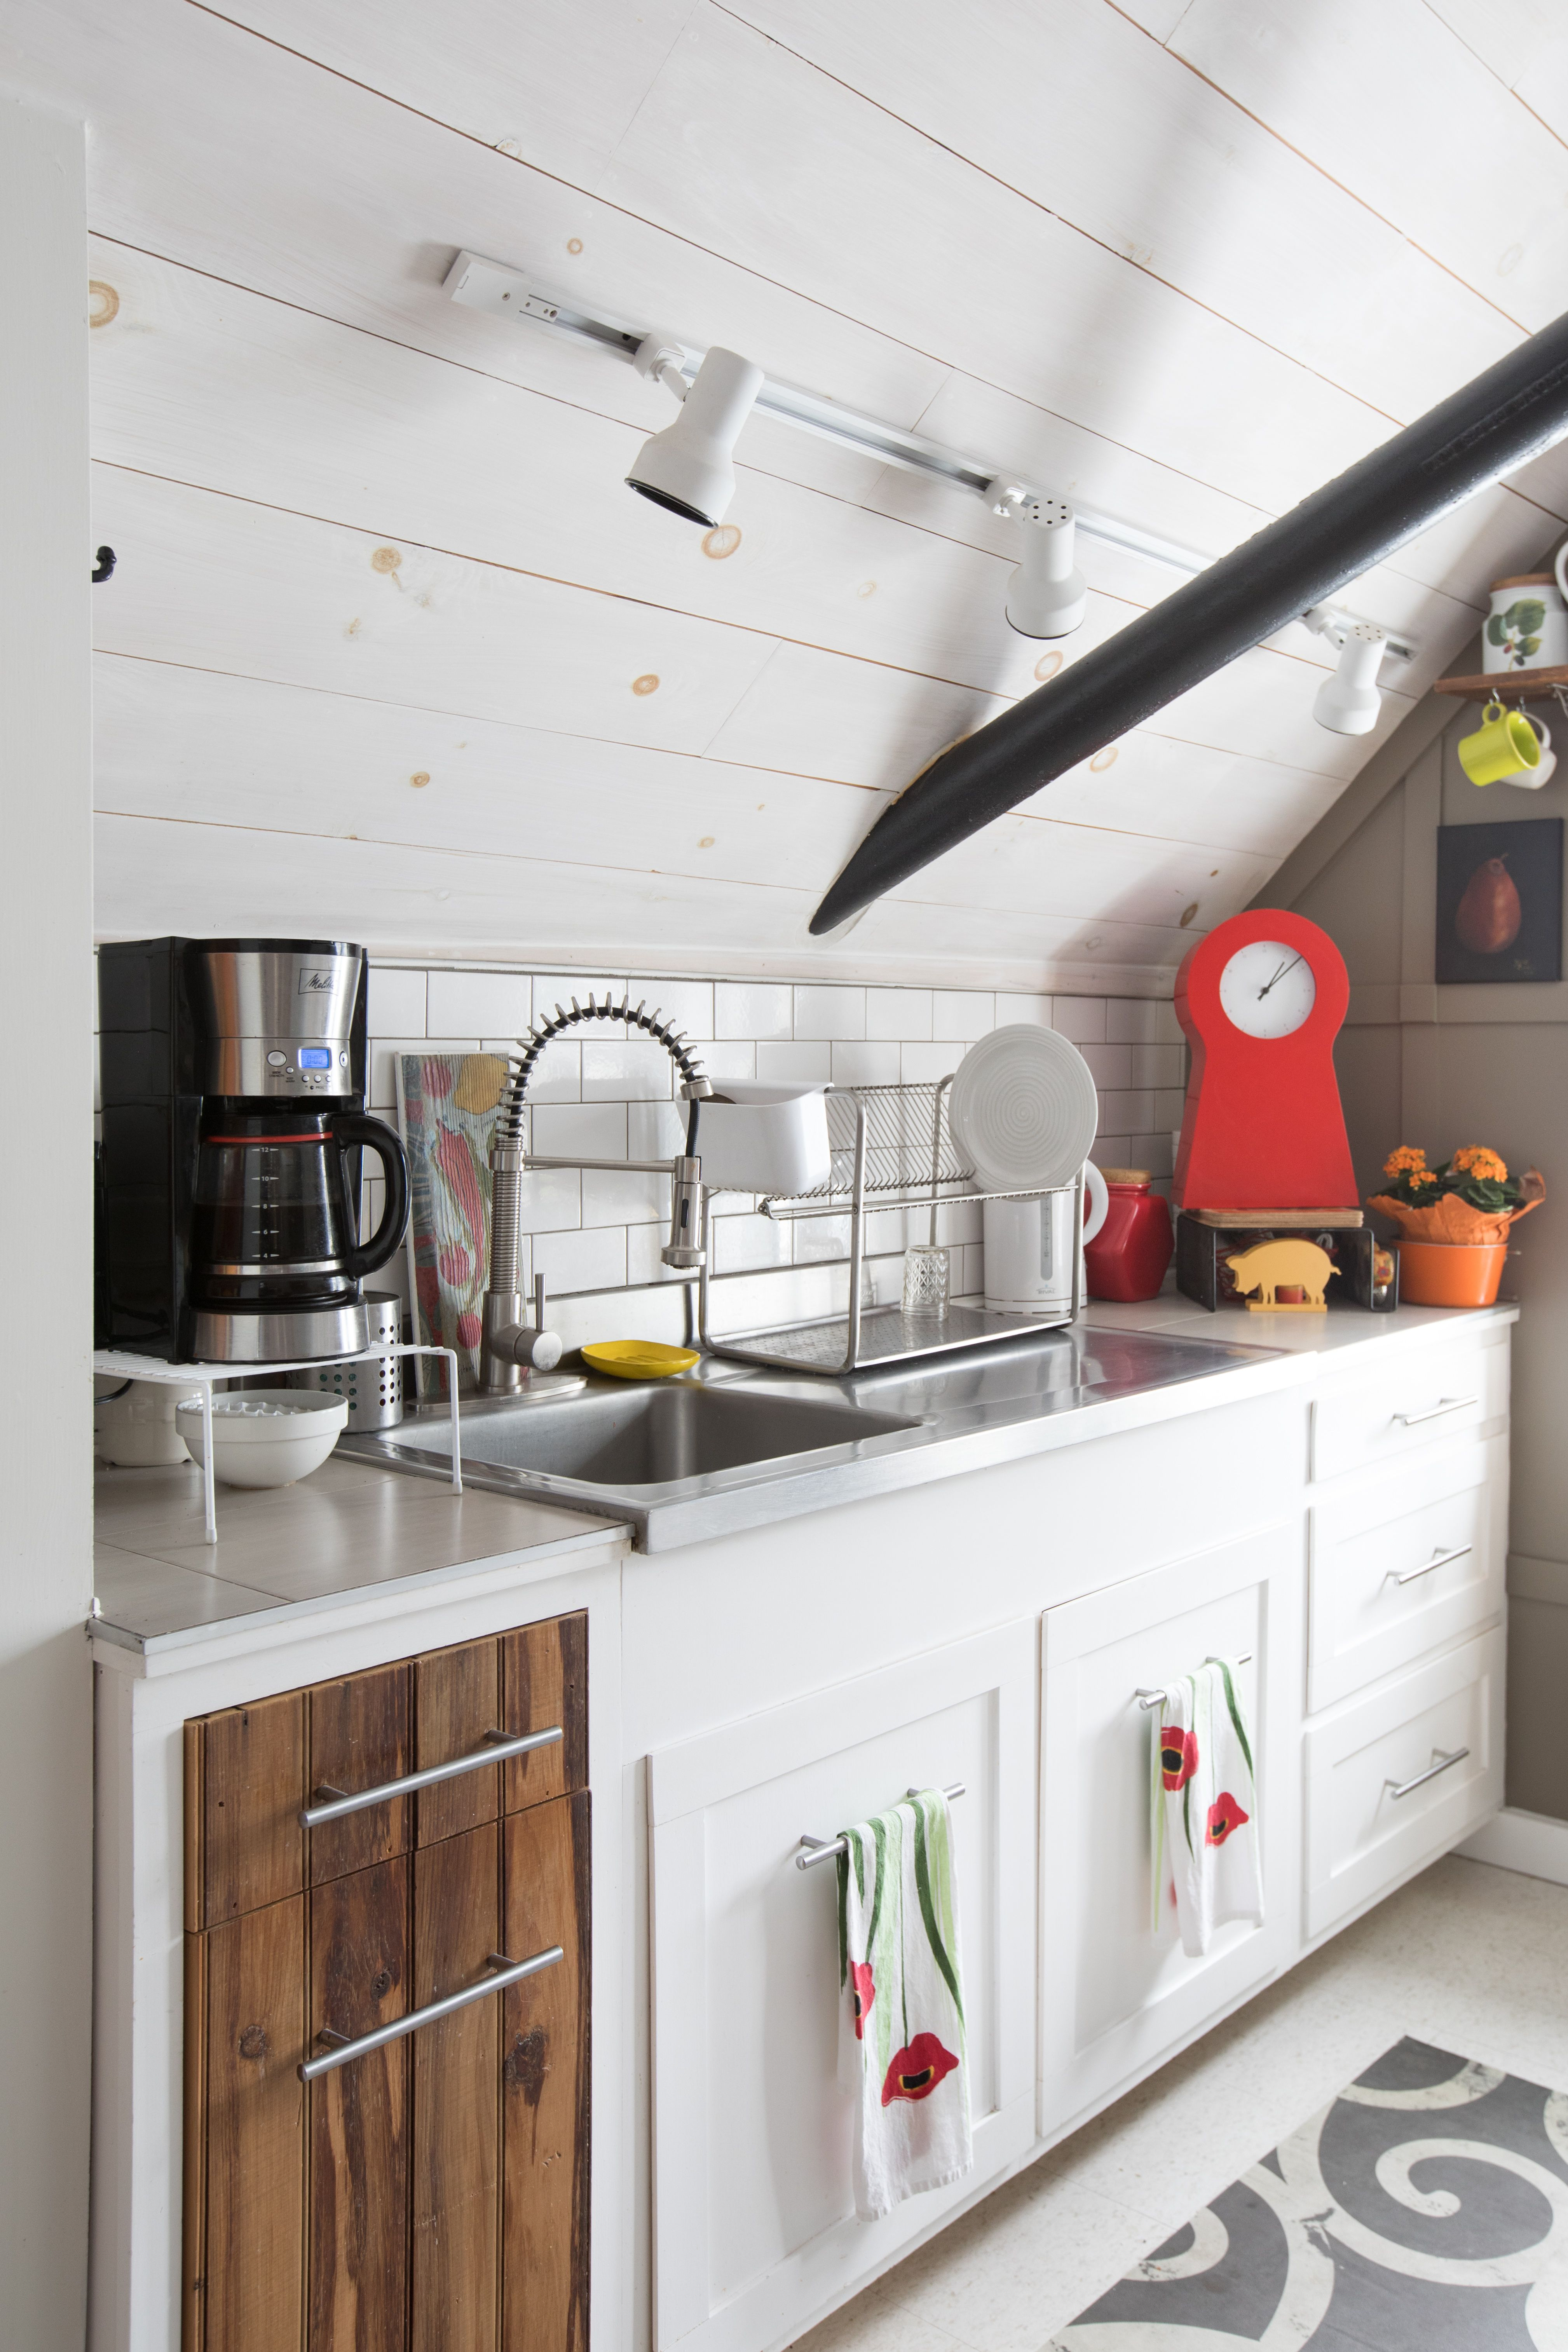 Remodelers Agree on the Best Color for Kitchen Cabinets | Kitchens ...